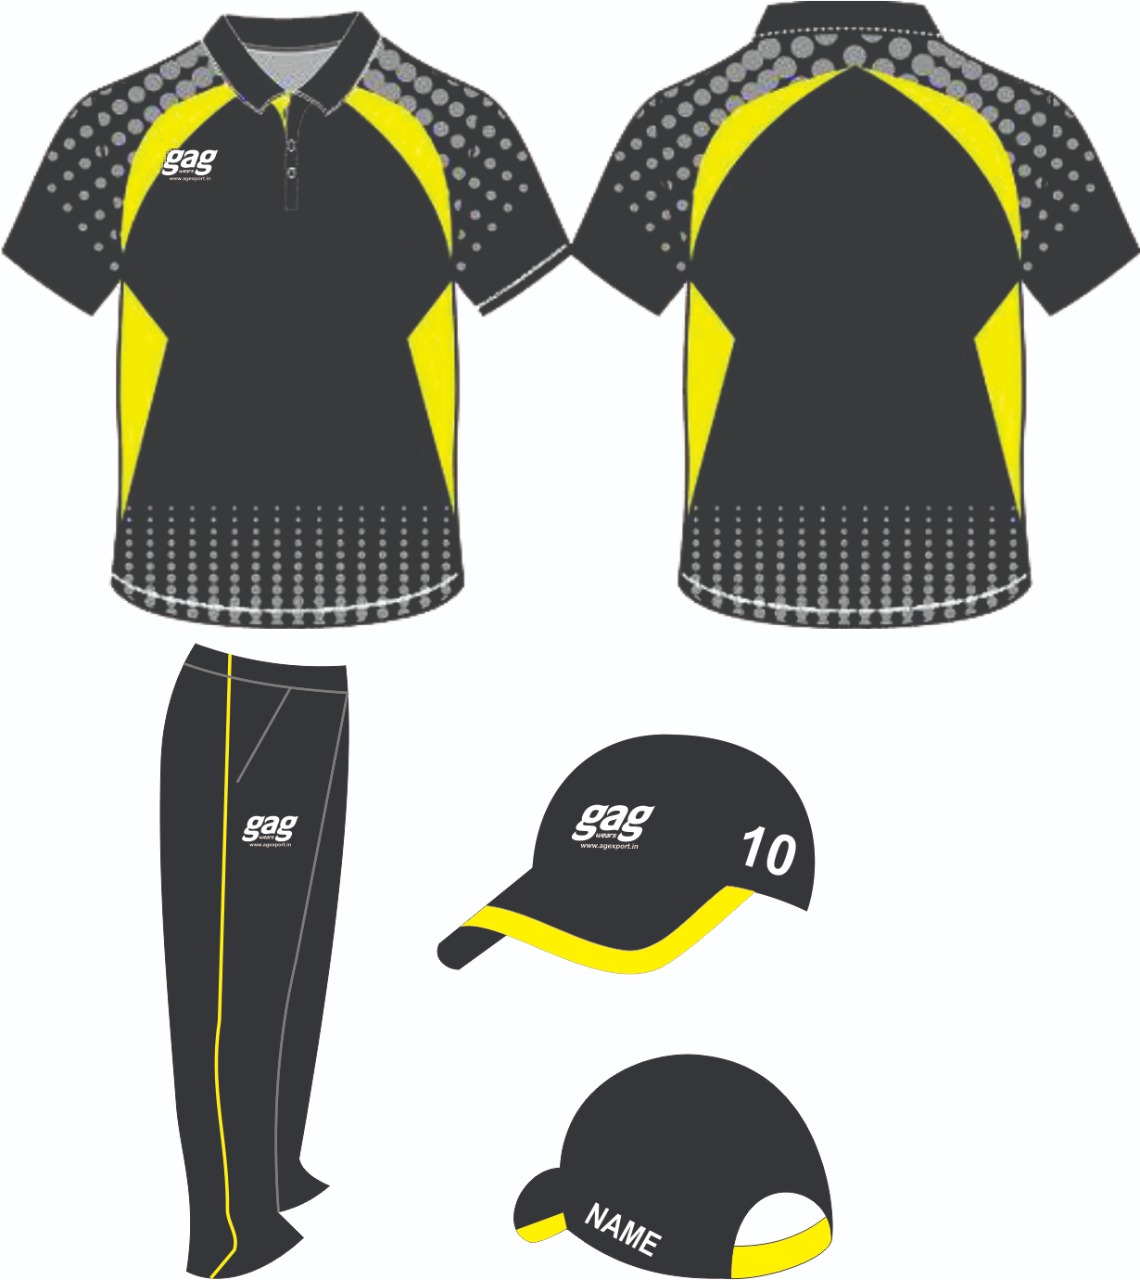 Cricket Uniform Manufacturers and Exporters in Rajkot